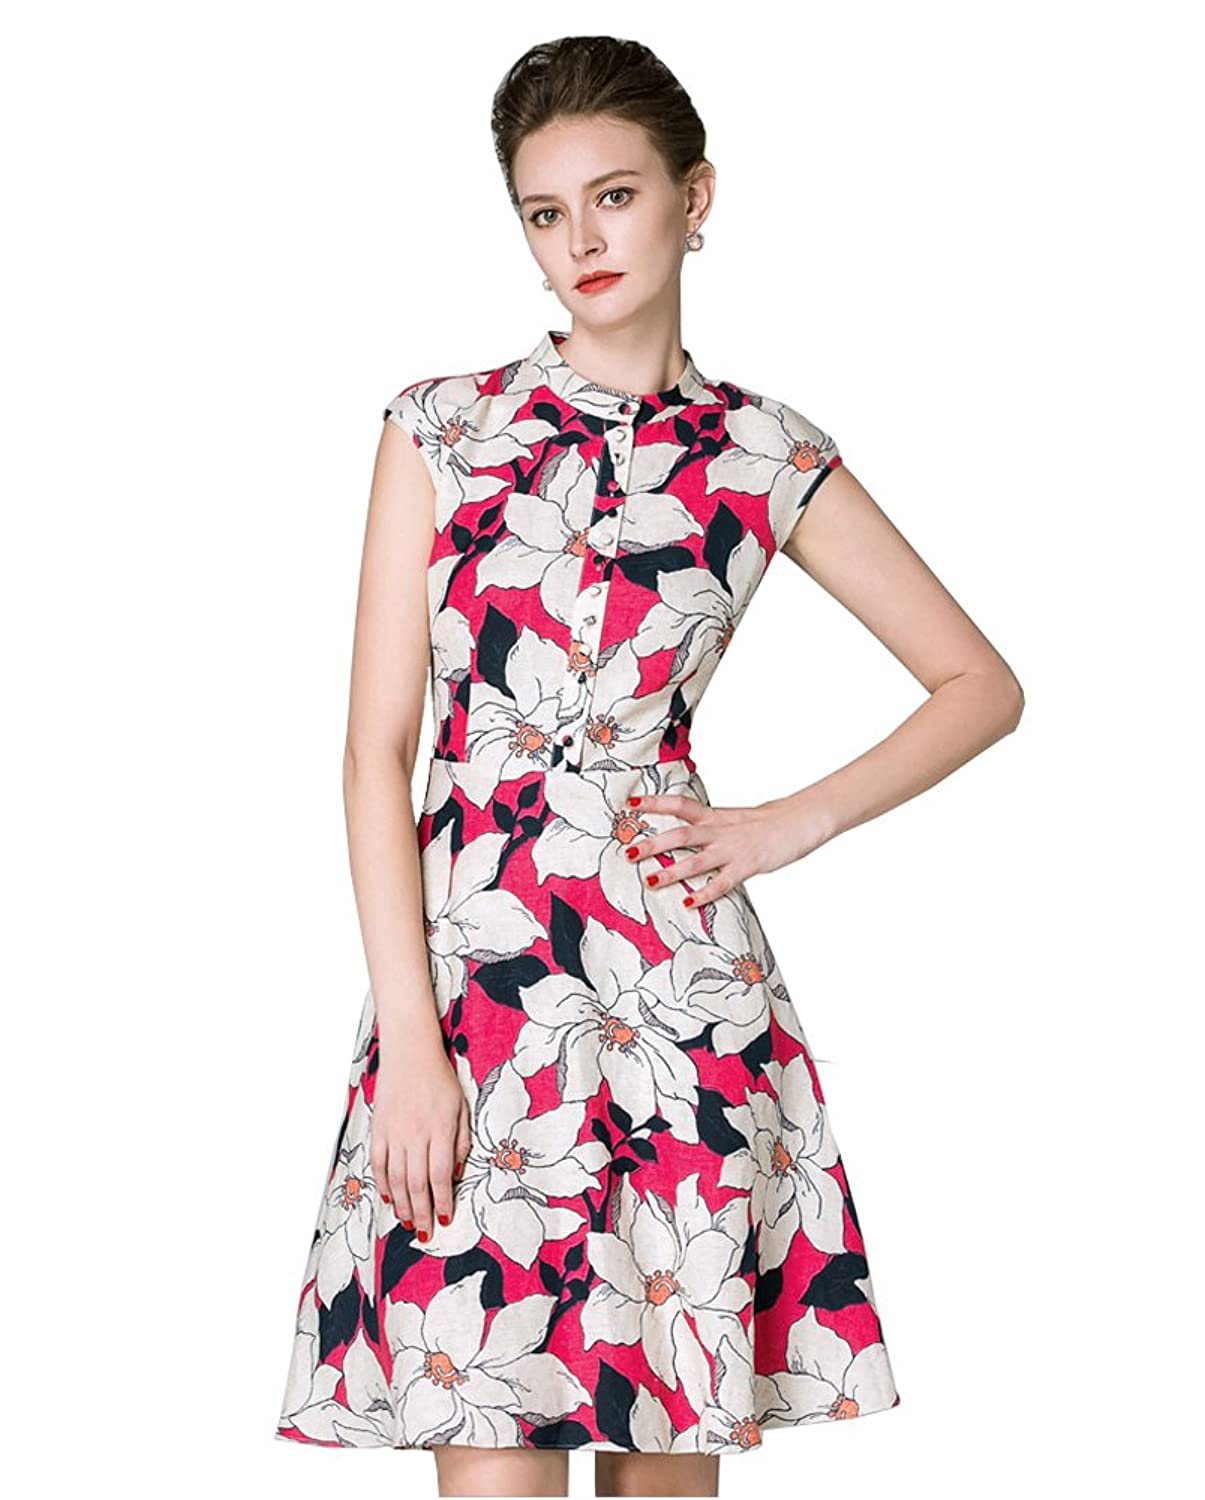 Sarah Dean Woman's Stand Neck Floral Printed Dress